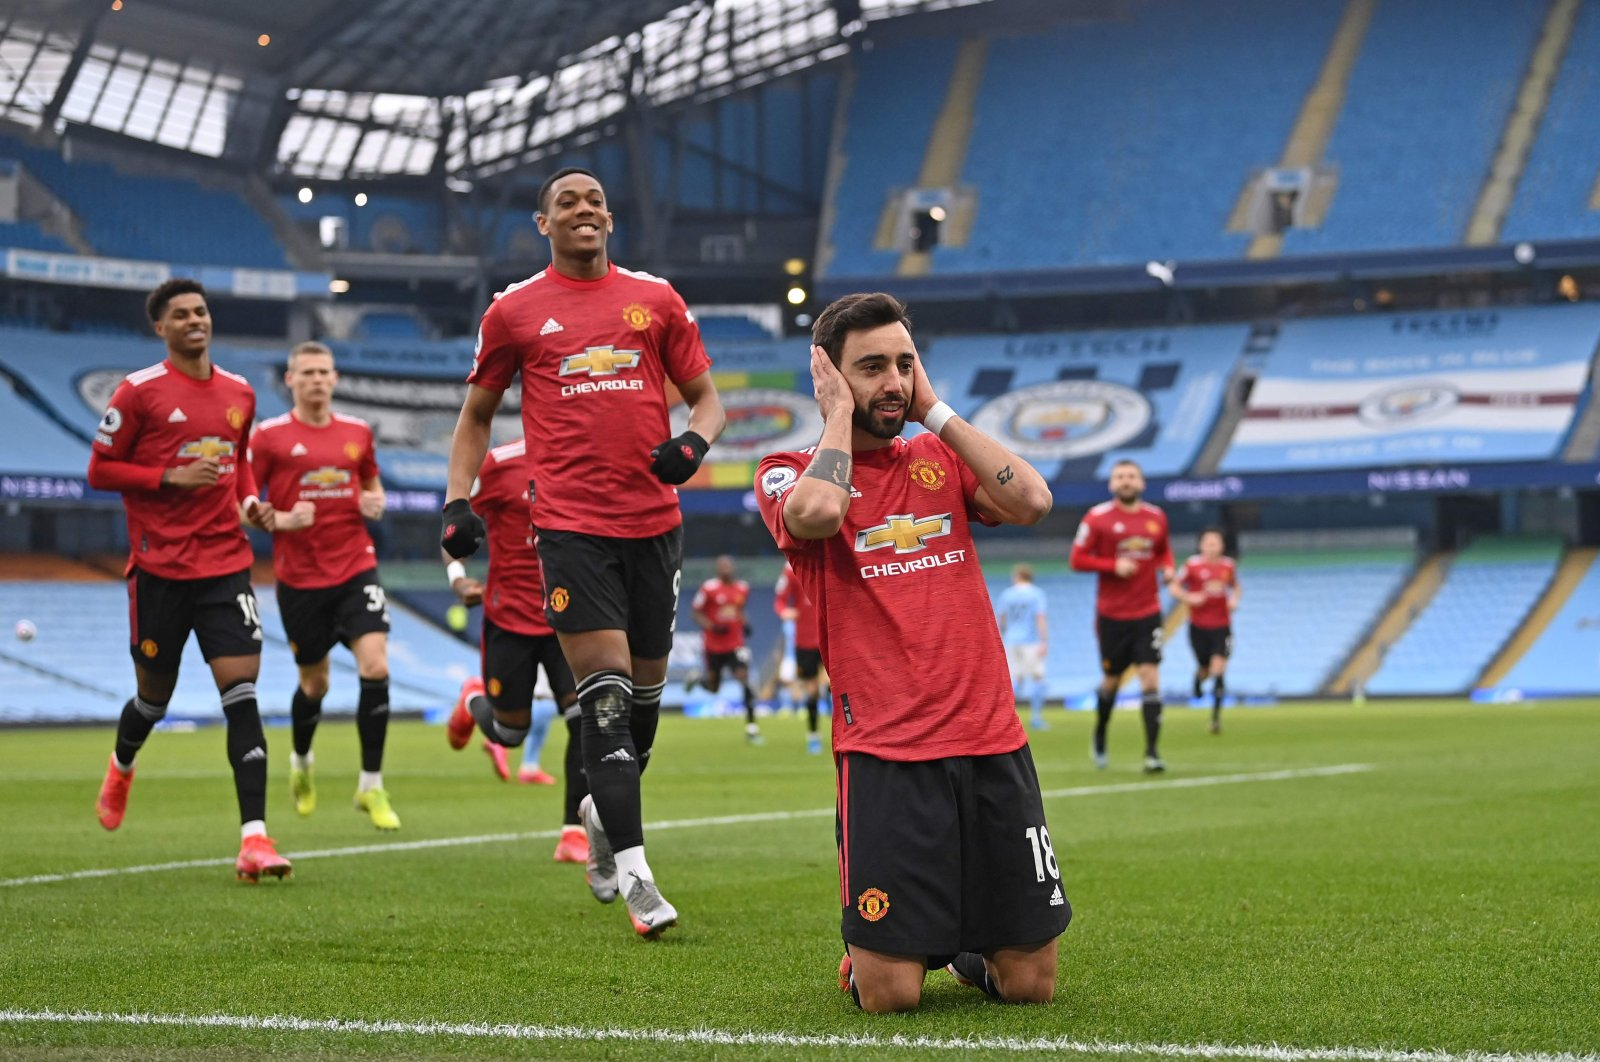 Manchester United's Portuguese midfielder Bruno Fernandes (R) celebrates with teammates after scoring a goal against Manchester City at the Etihad Stadium in Manchester, England, March 7, 2021. (AFP Photo)